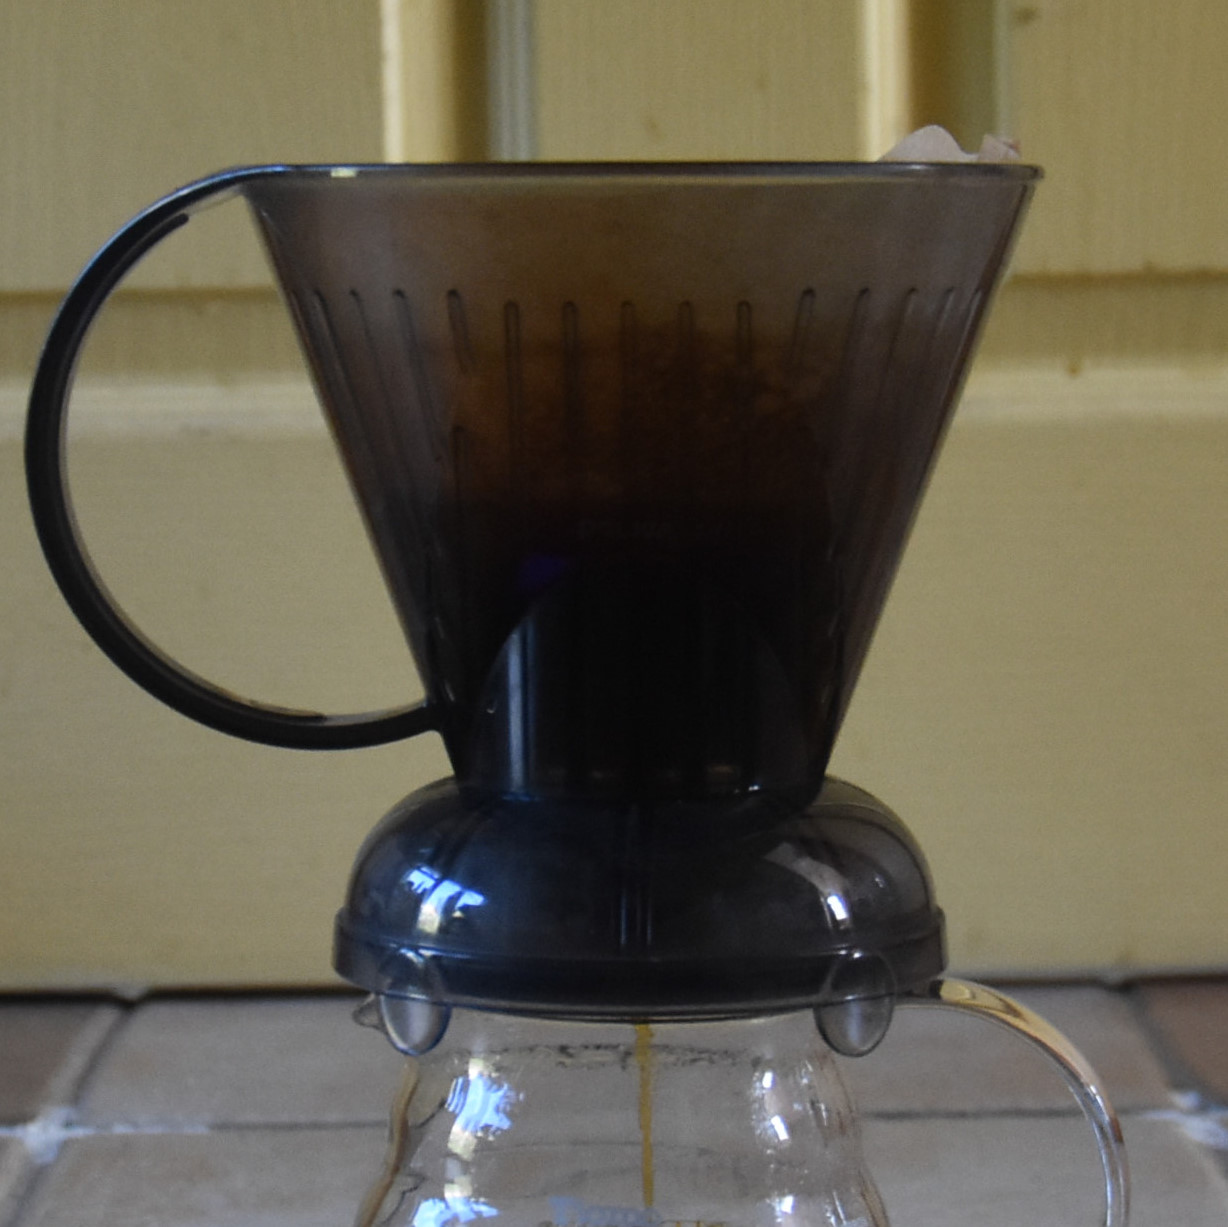 A Clever Dripper, sitting on top of a glass carafe, the brewed coffee draining through the bottom of the filter.